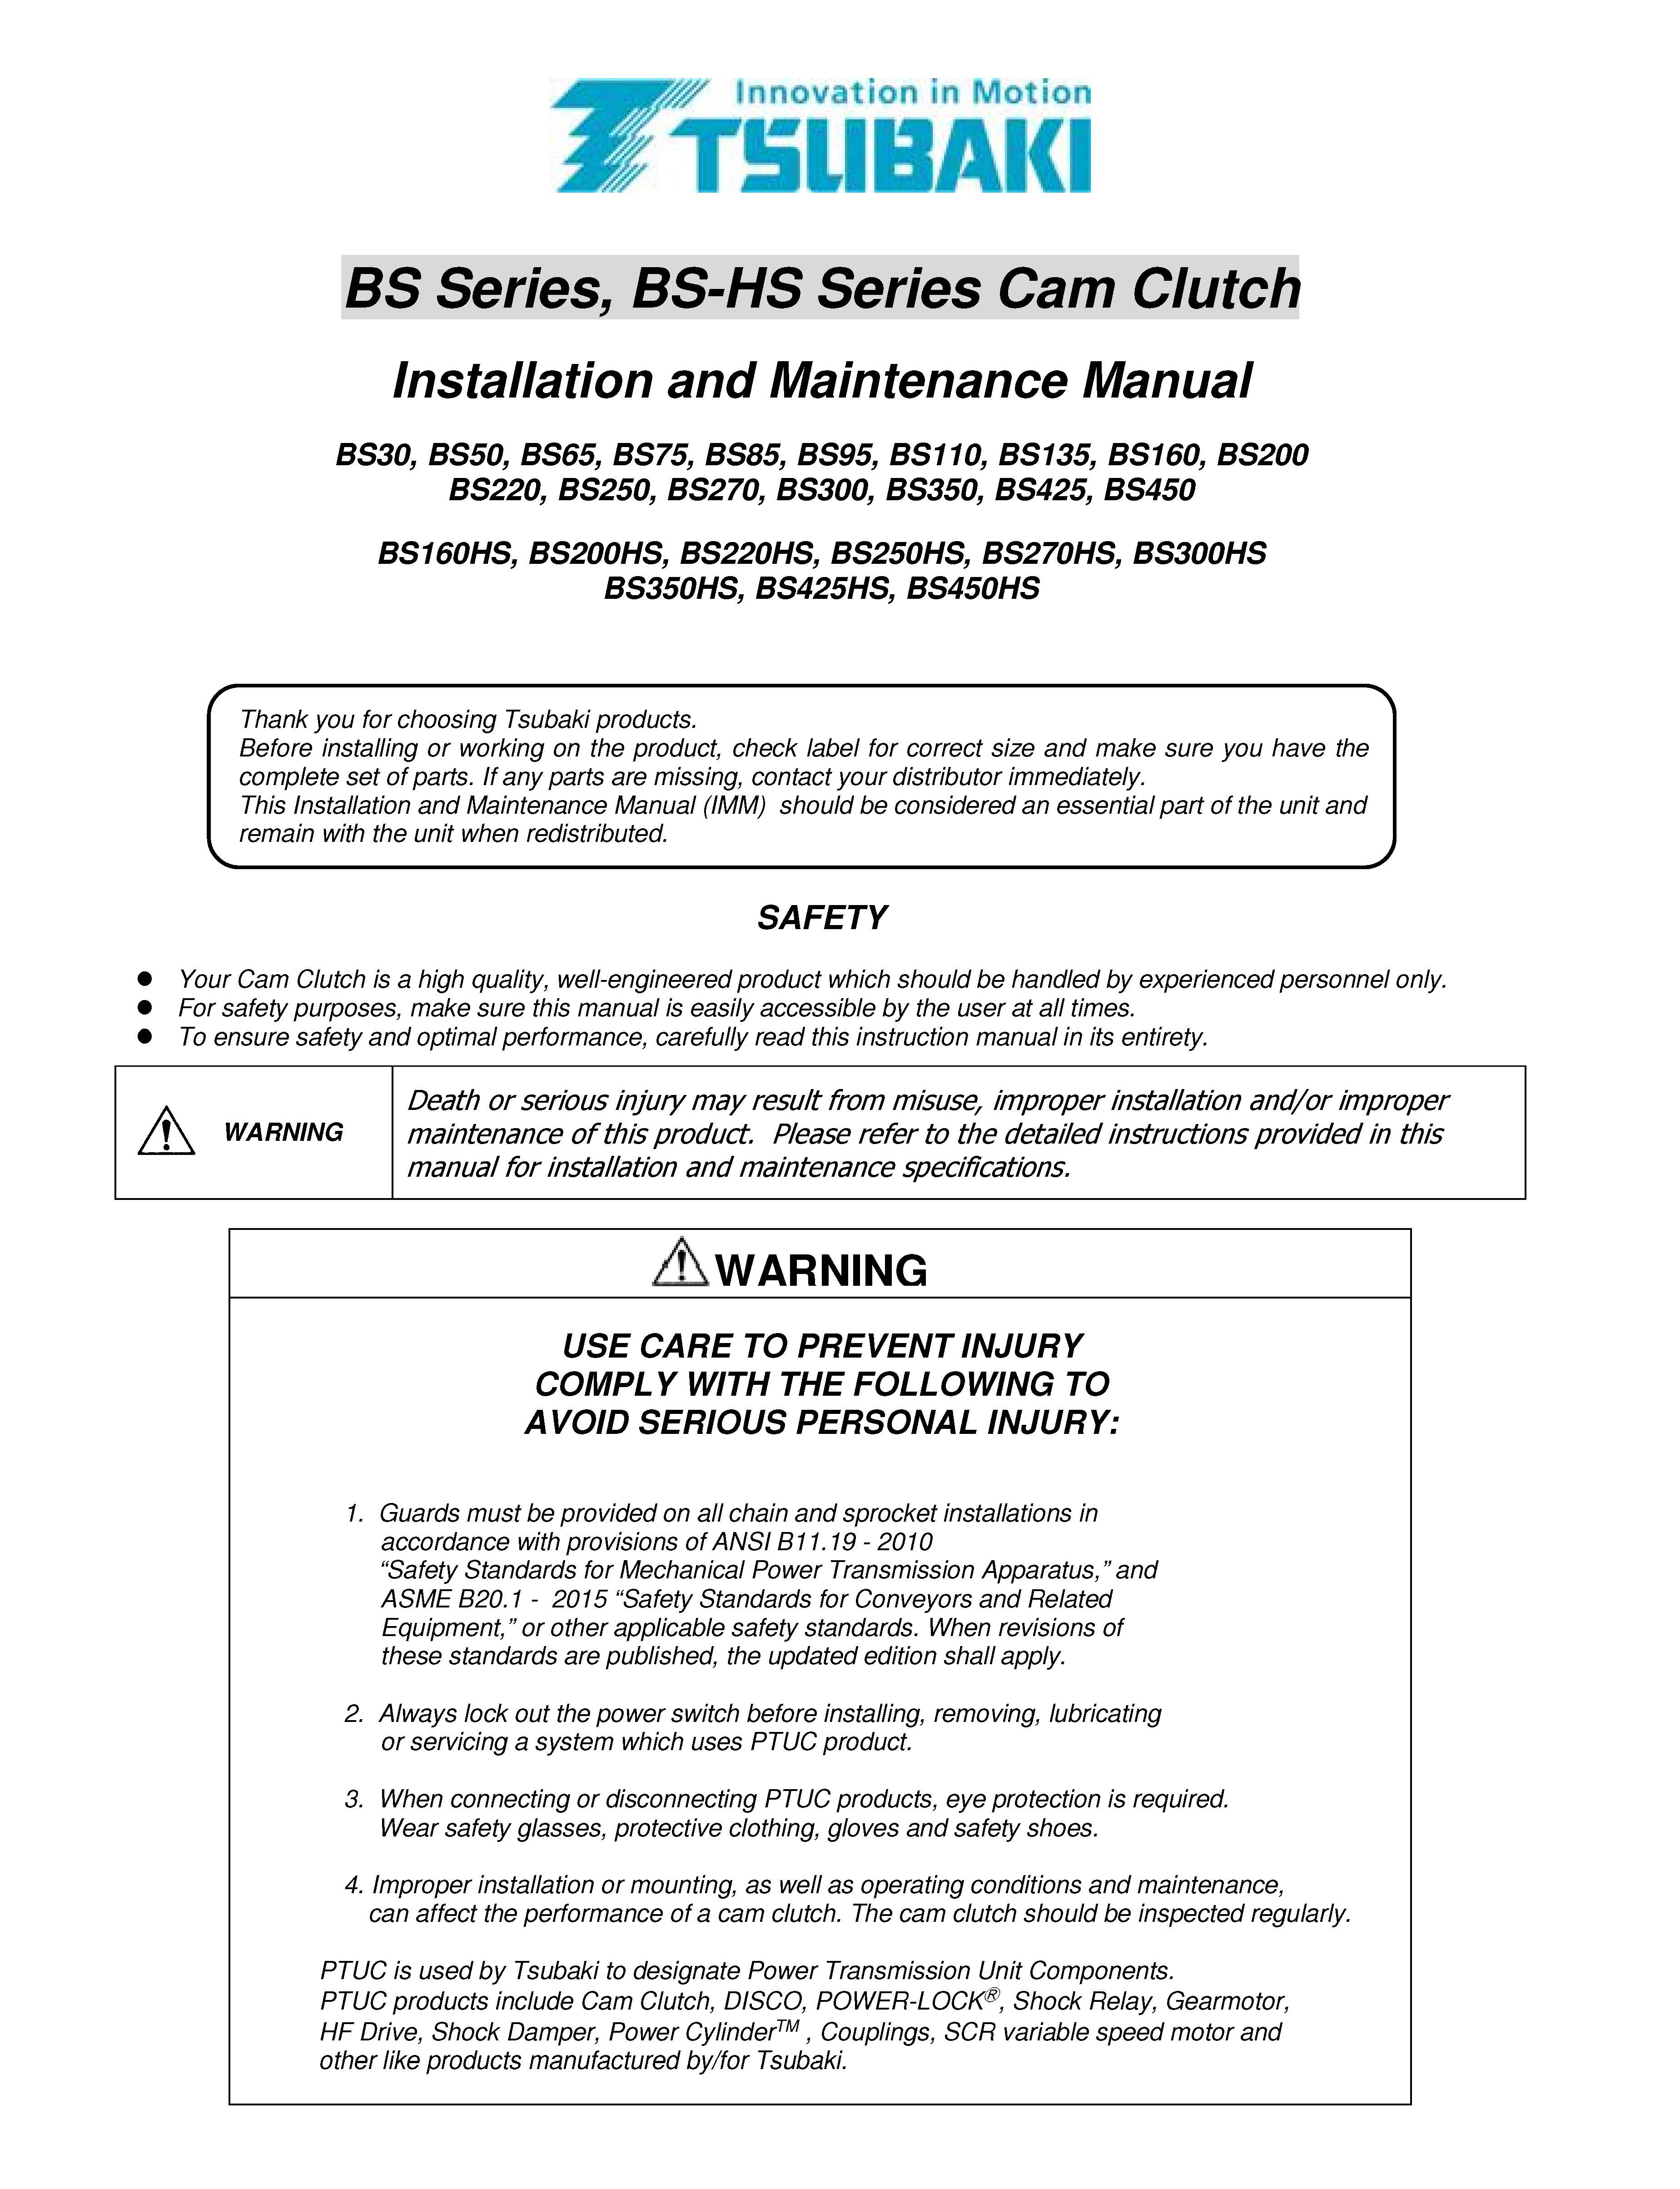 BS Series Instruction Manual